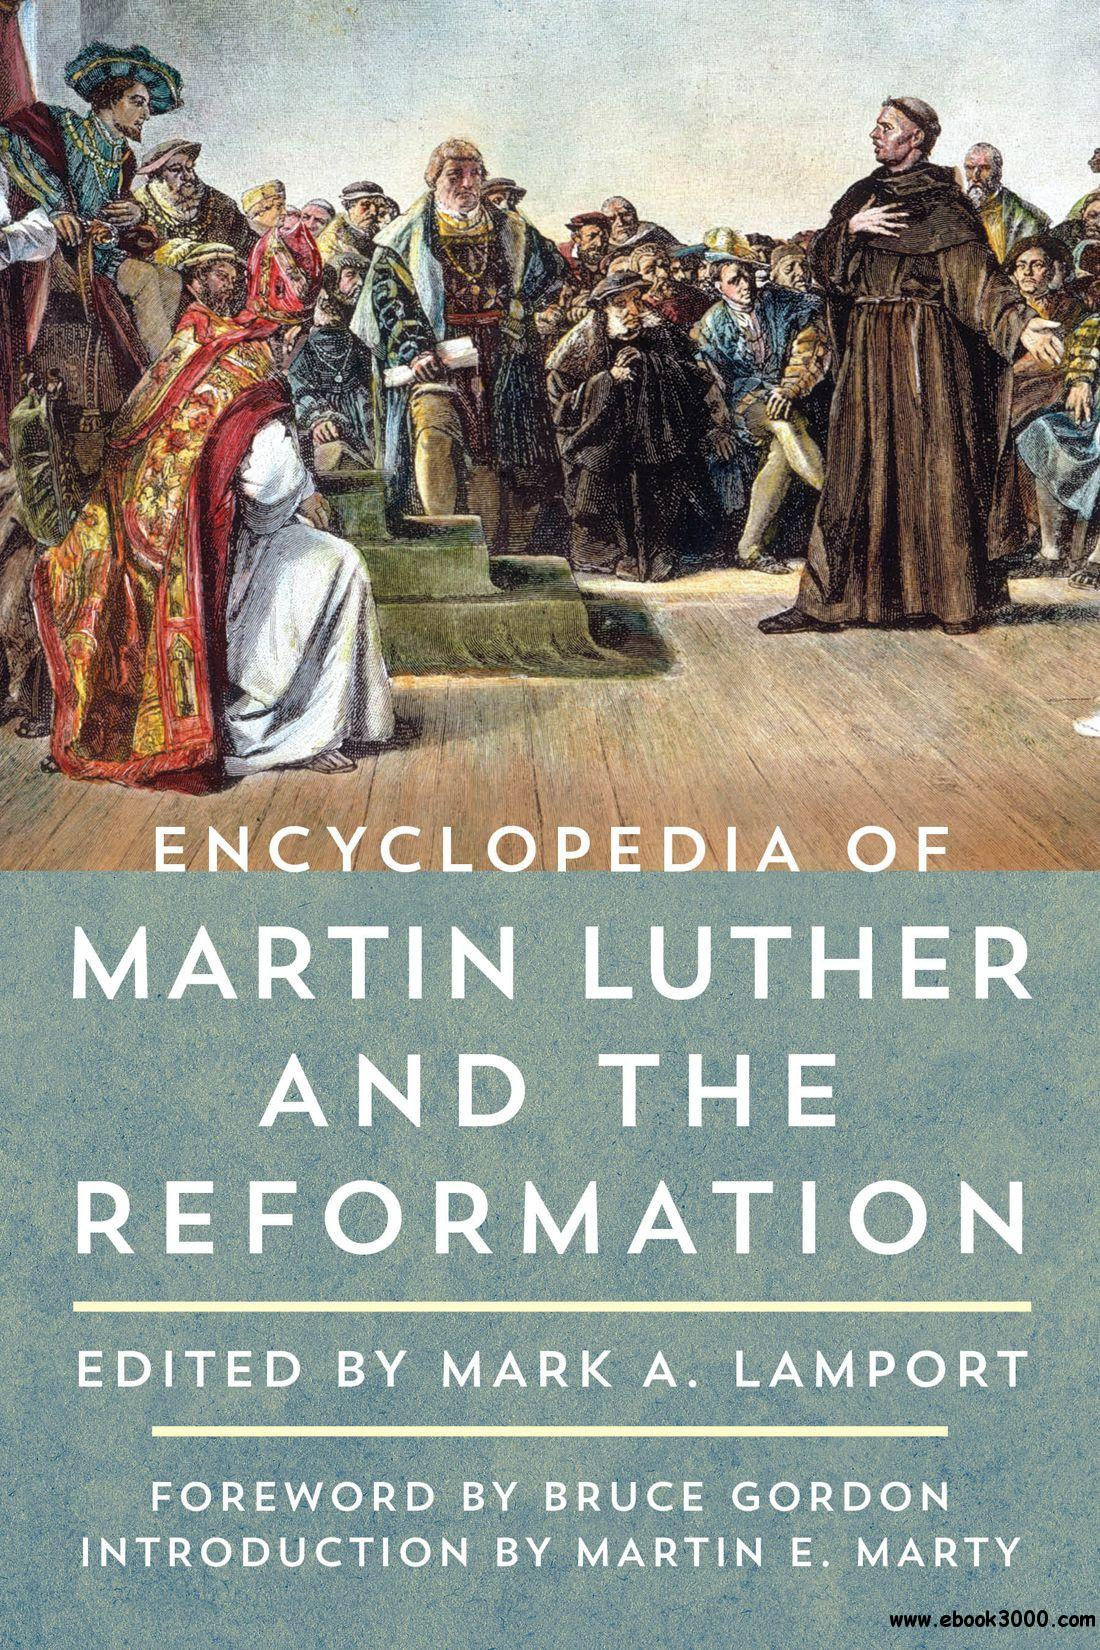 an introduction to the history of martin luther This course is an introduction to the life and writings of the great german reformer, martin luther there are 20 lectures totaling approximately 18 hours.